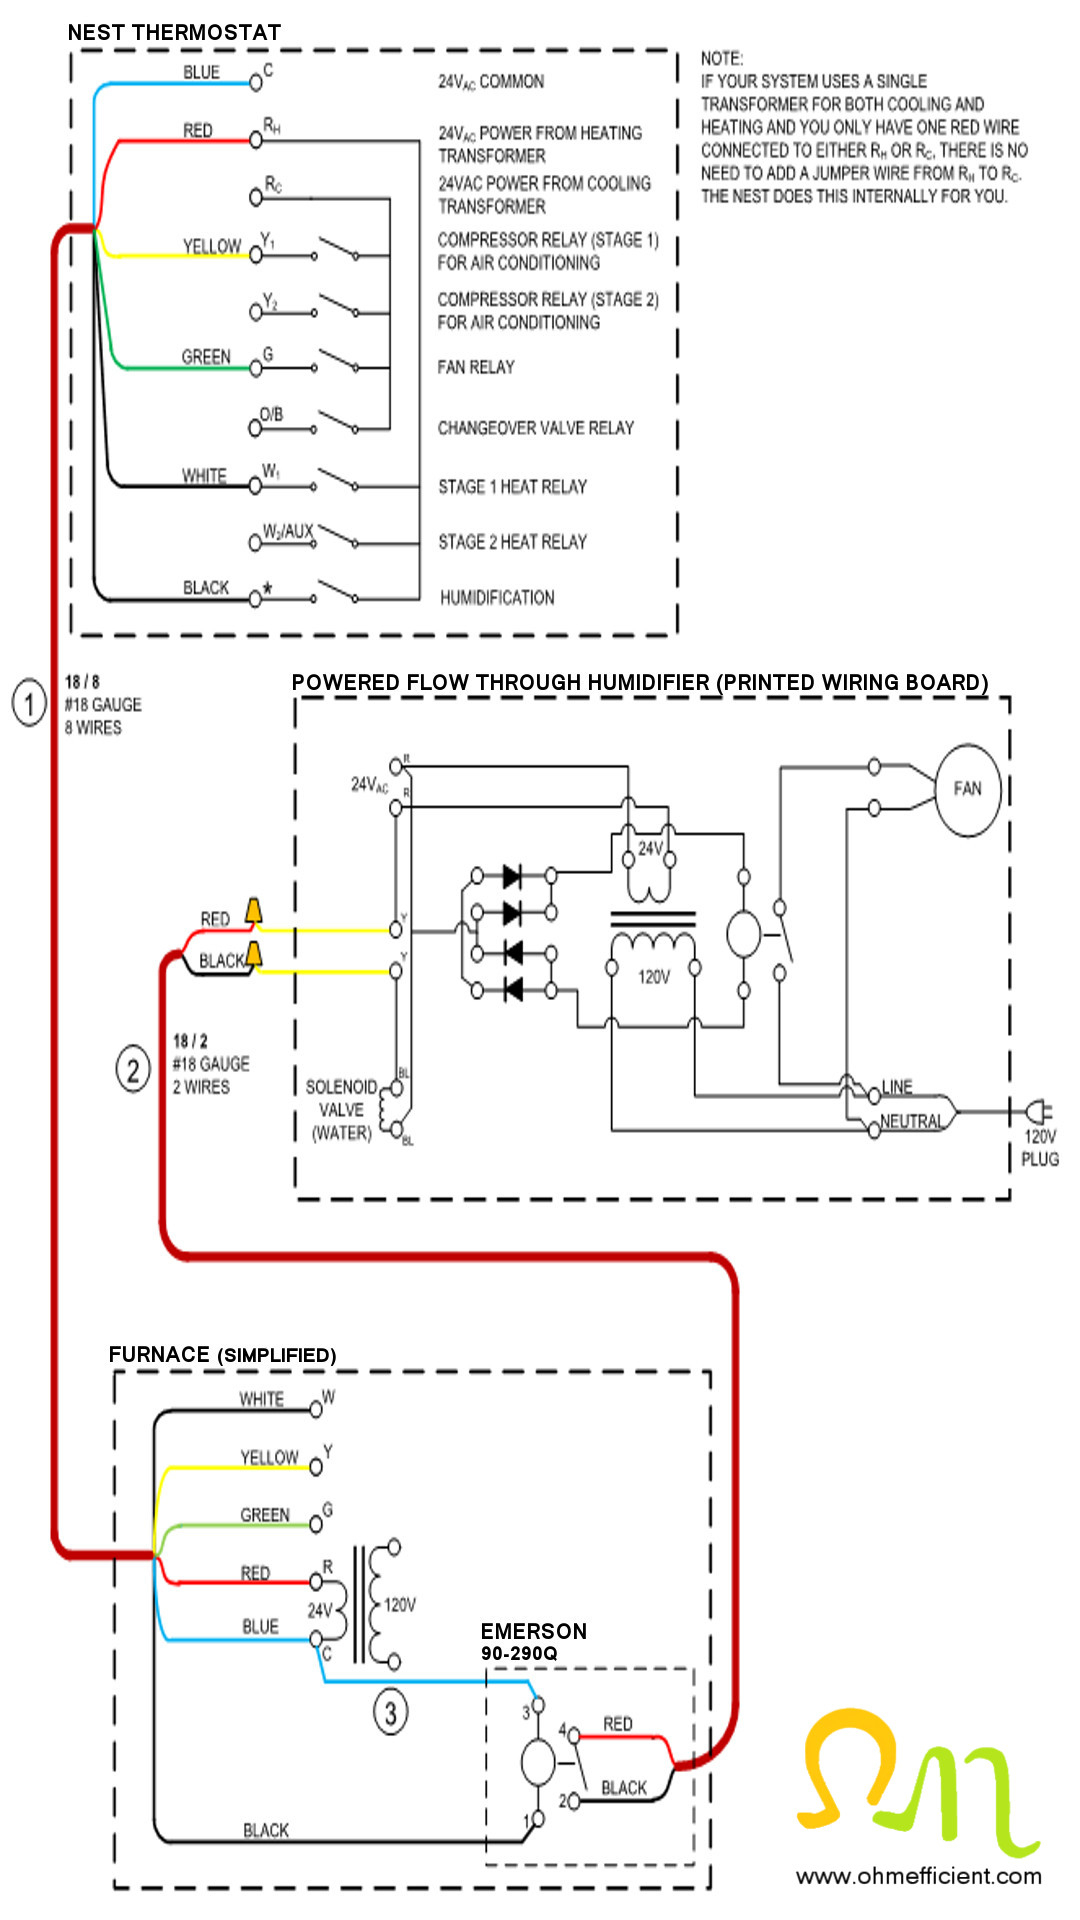 Wiring Diagram For Nest Thermostat With Humidifier - Wiring Diagrams - Nest Thermostat 2Nd Generation Wiring Diagram